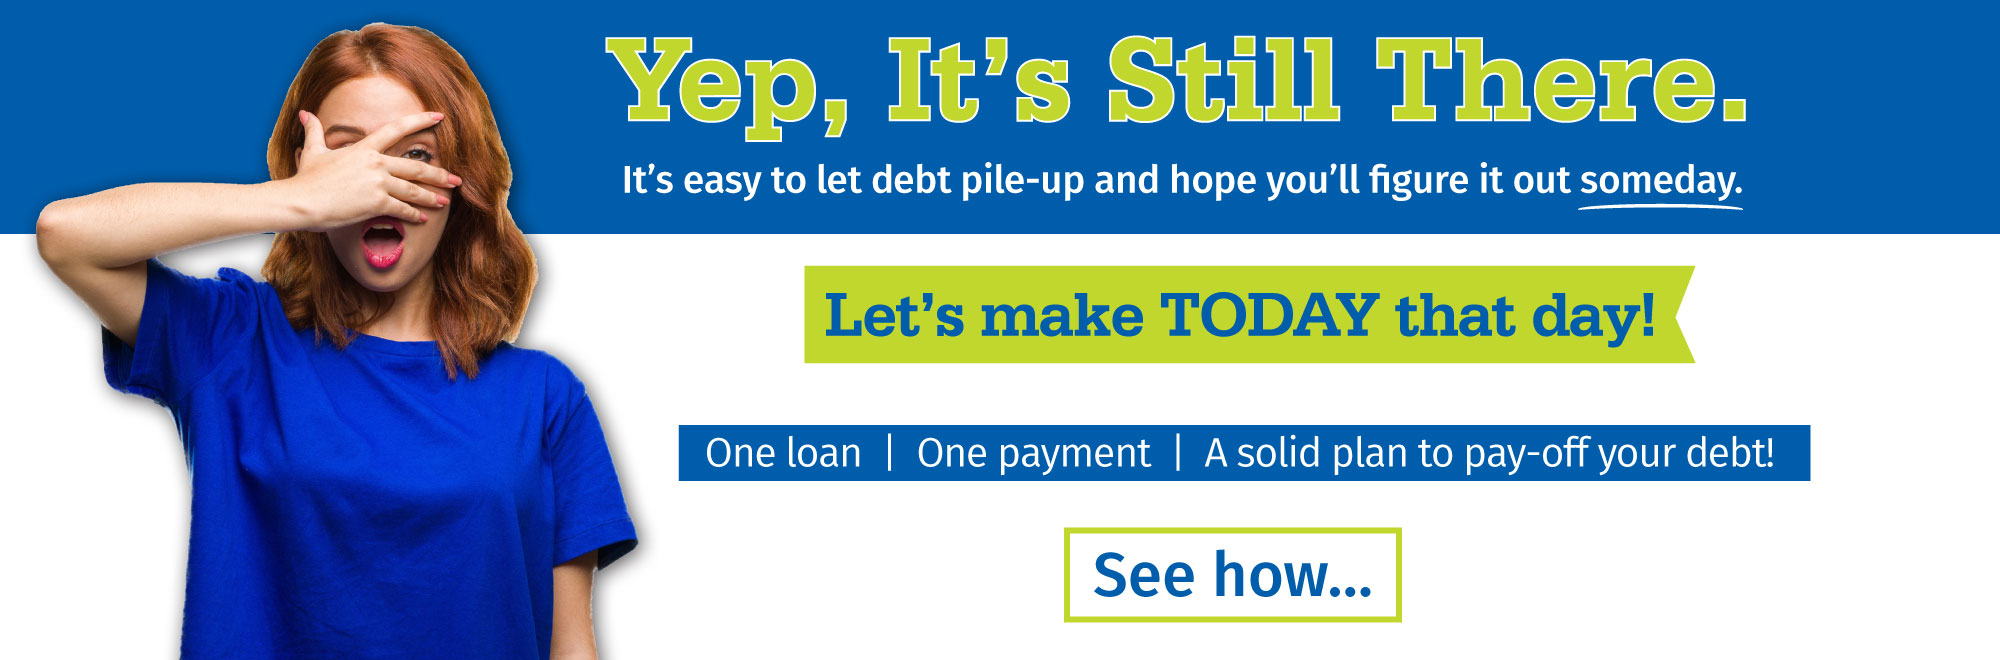 Apply for our low-rate debt consolidation loan now!